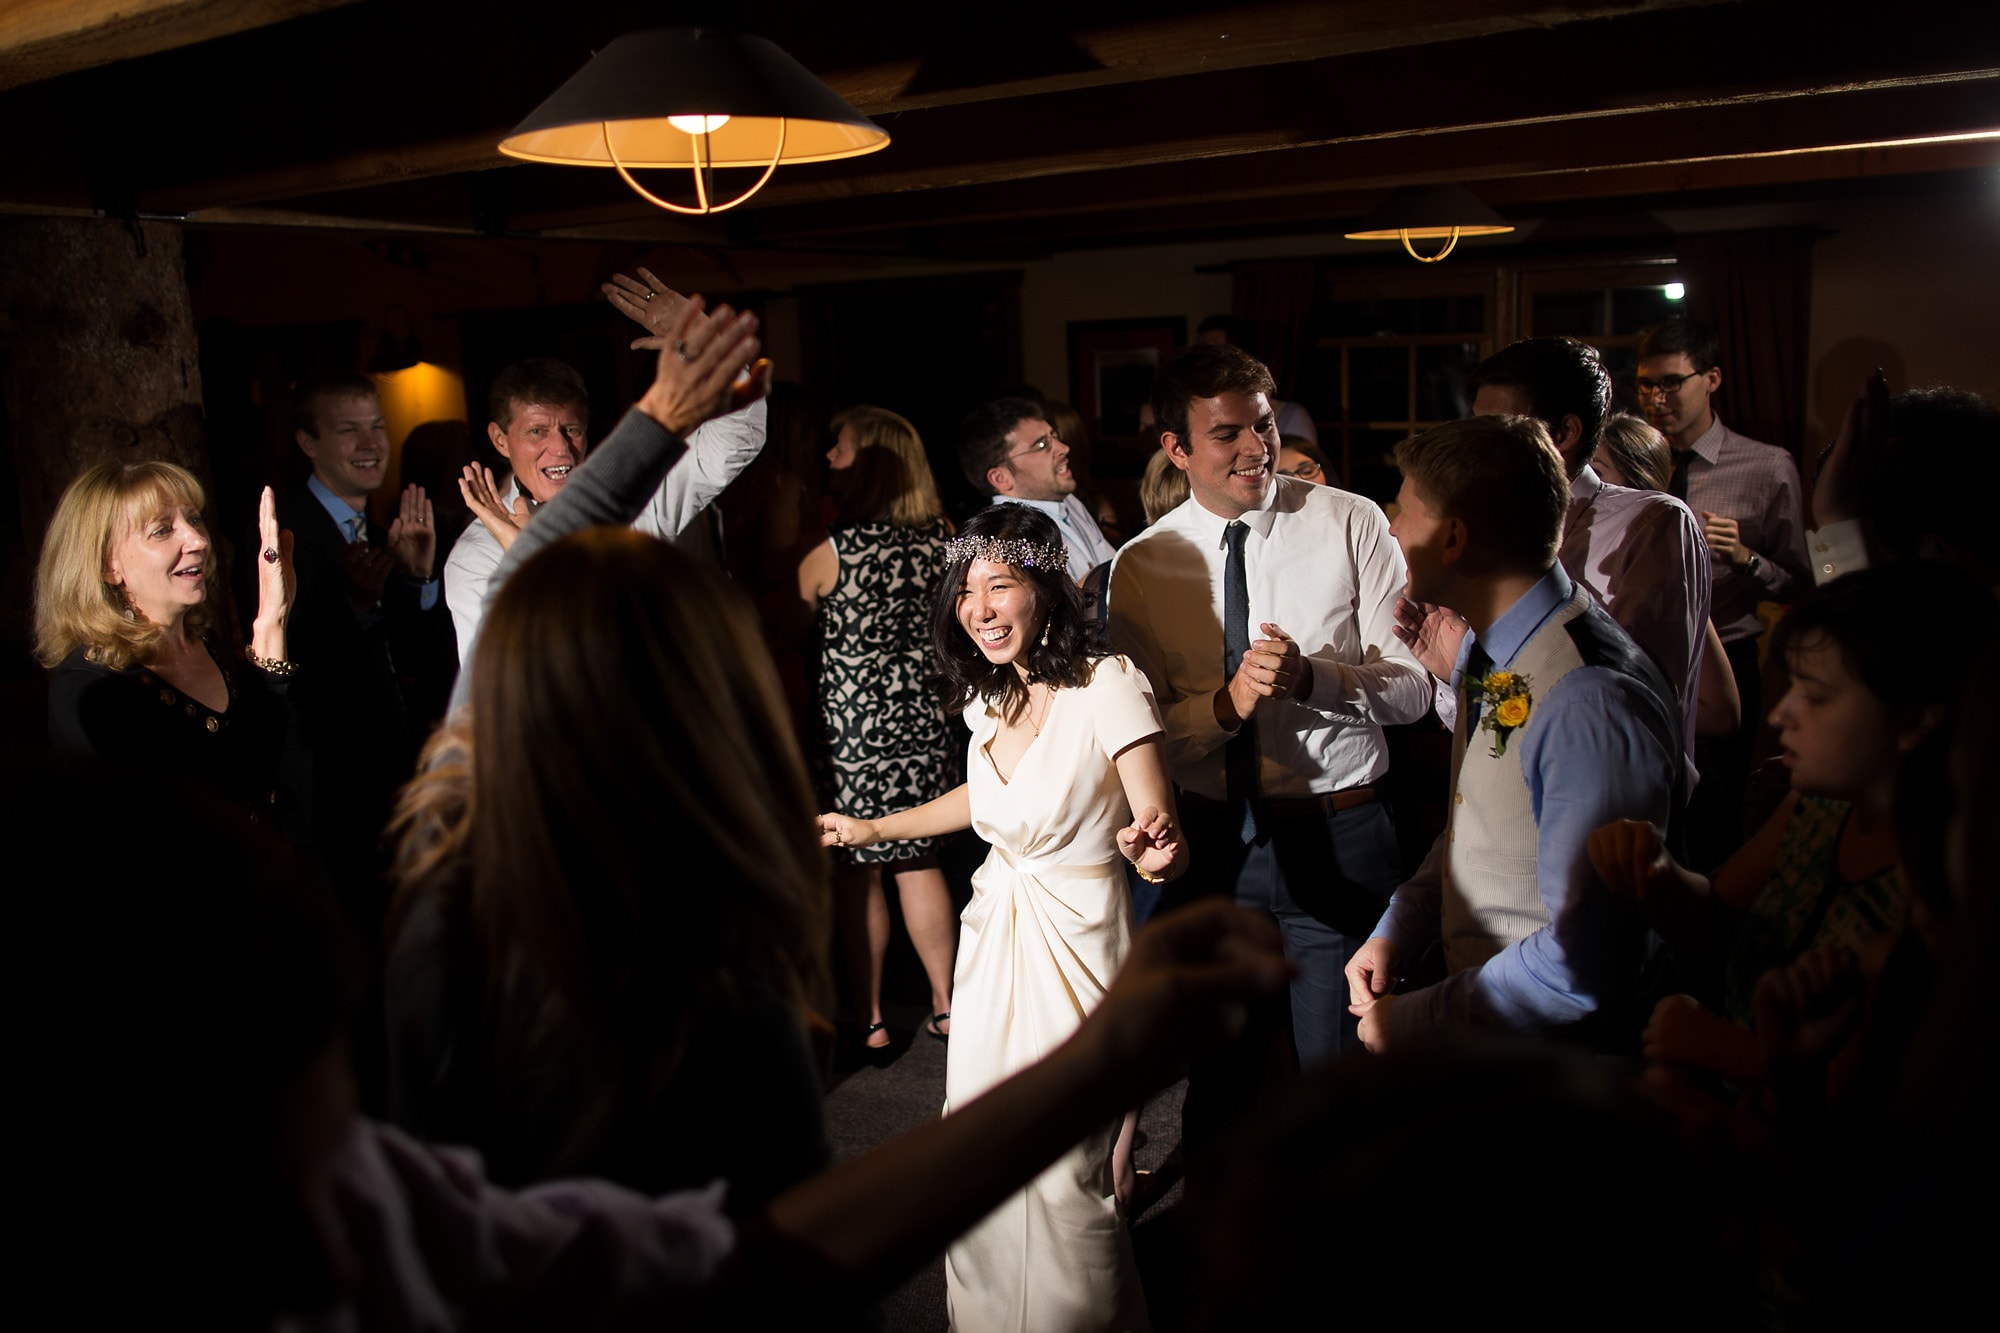 Guests dance during Allison and Walker's Lynn Britt Cabin wedding in Snowmass Village near Aspen, Colorado.